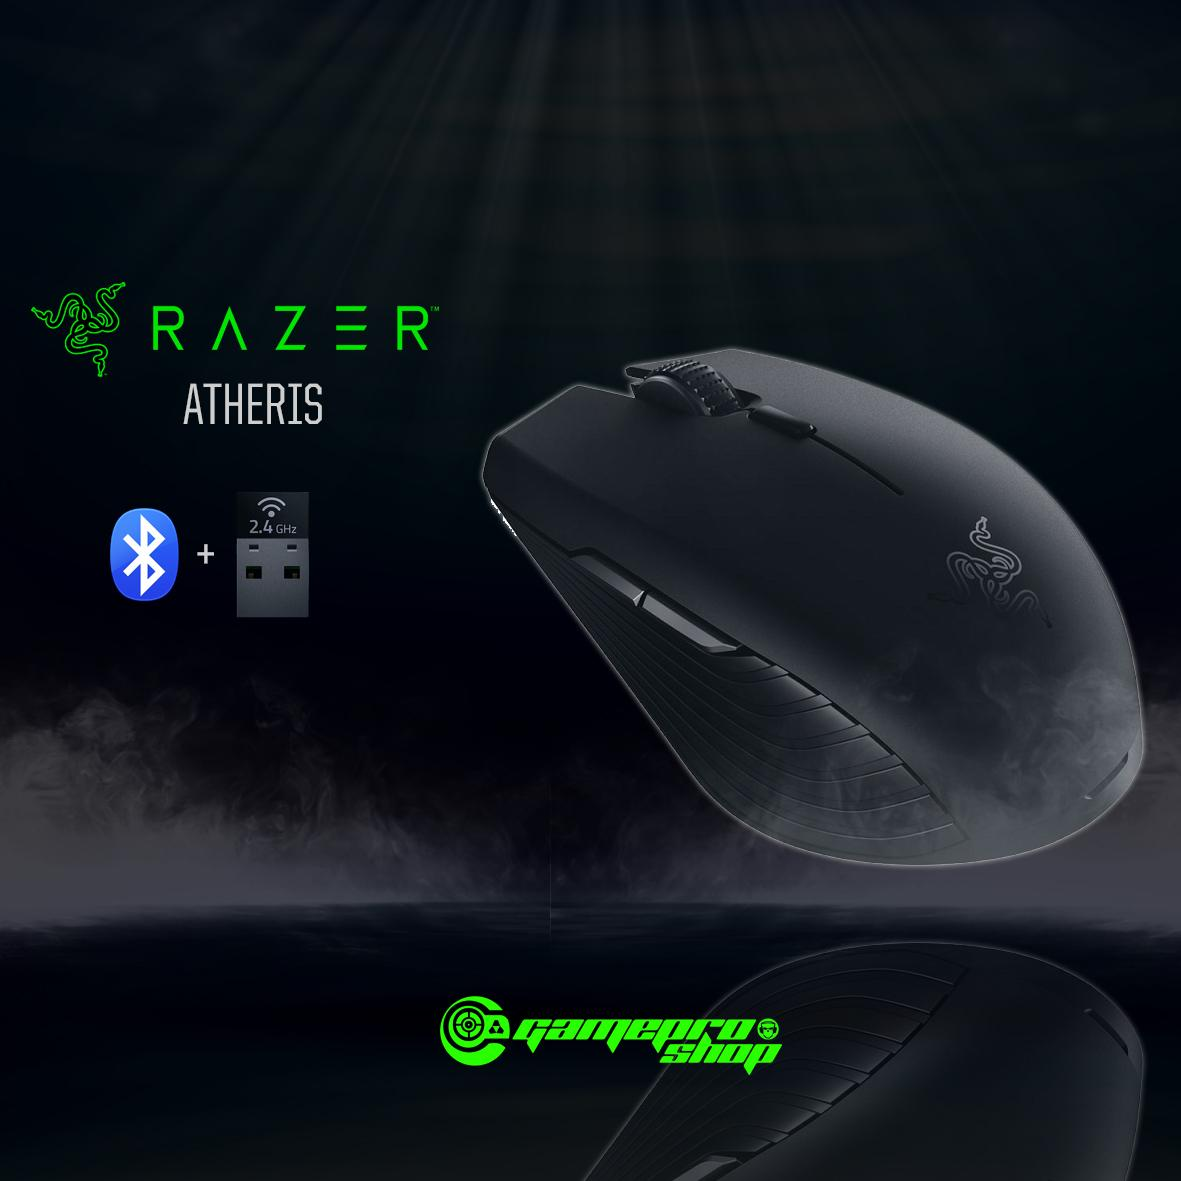 RAZER ATHERIS Gaming Wireless Bluetooth Mouse (Black / Mercury White)  *COMEX PROMO*